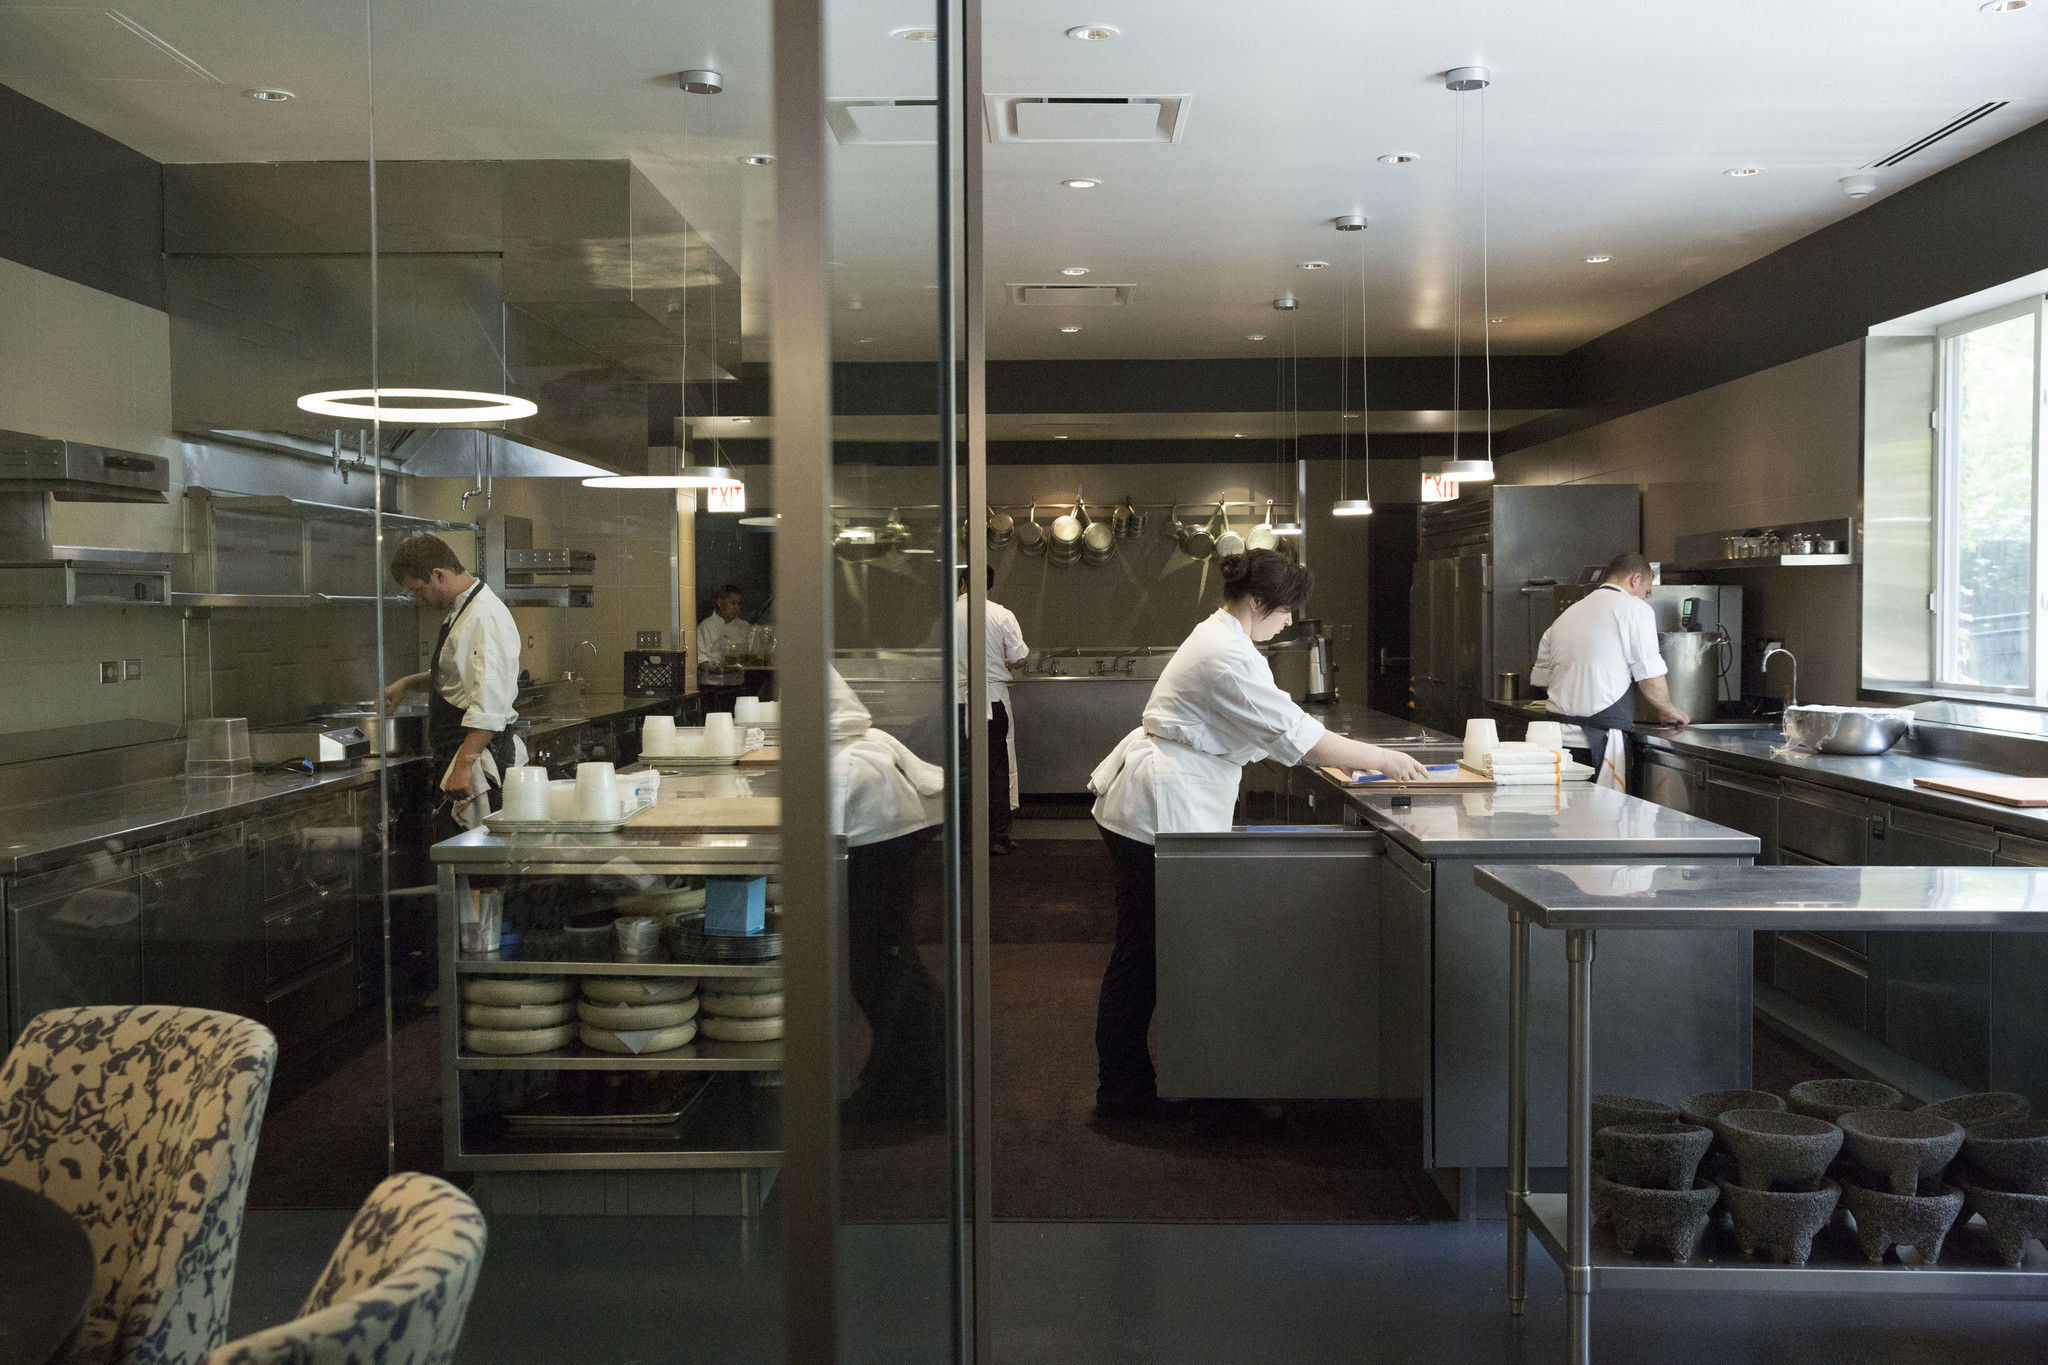 Alinea Tickets Go On Sale At 11 A M Chicago Tribune